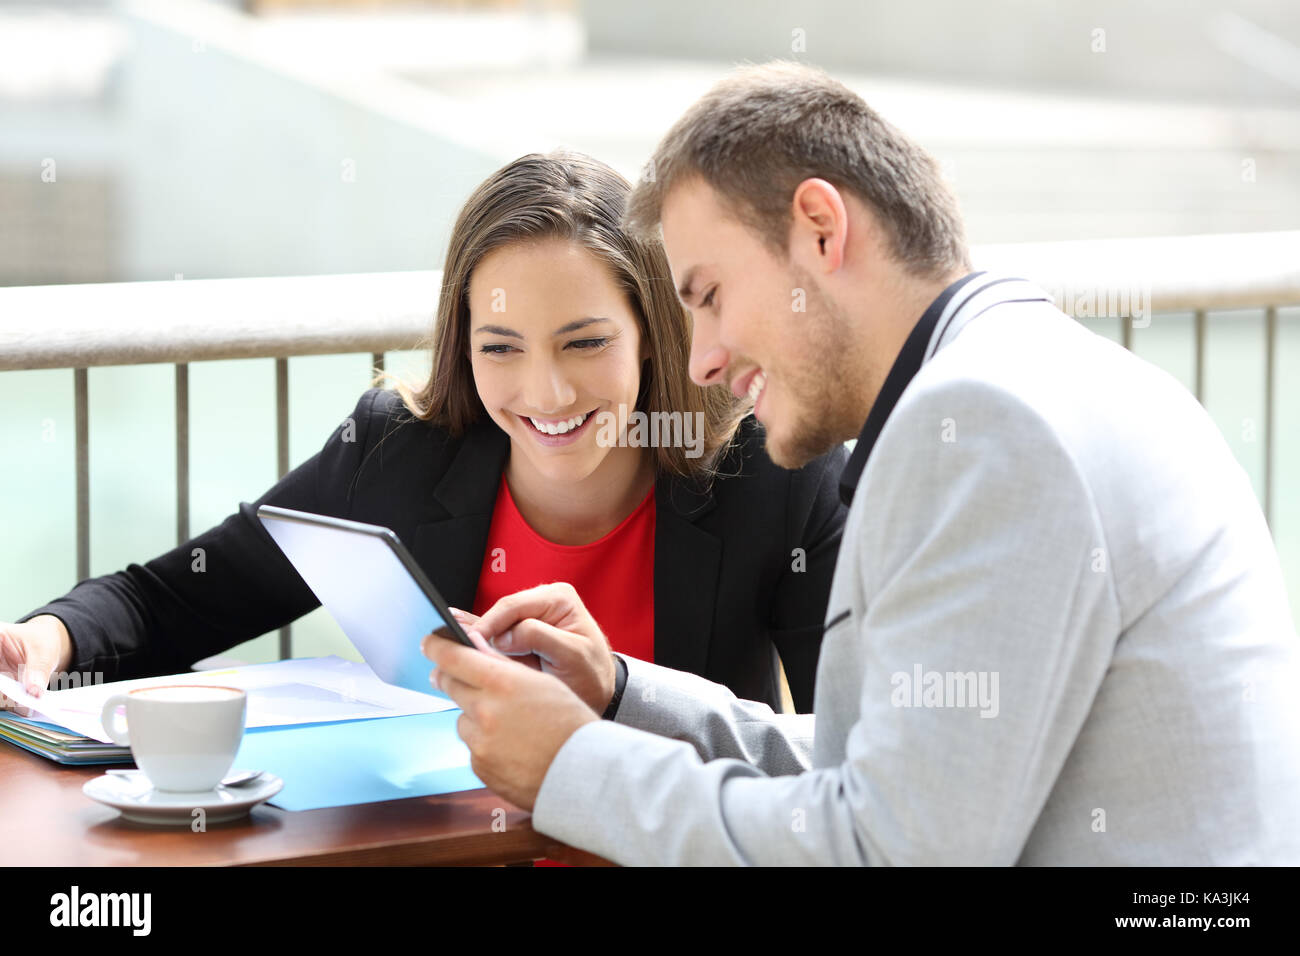 Two executives consulting on line data in a tablet sitting in a restaurant terrace - Stock Image